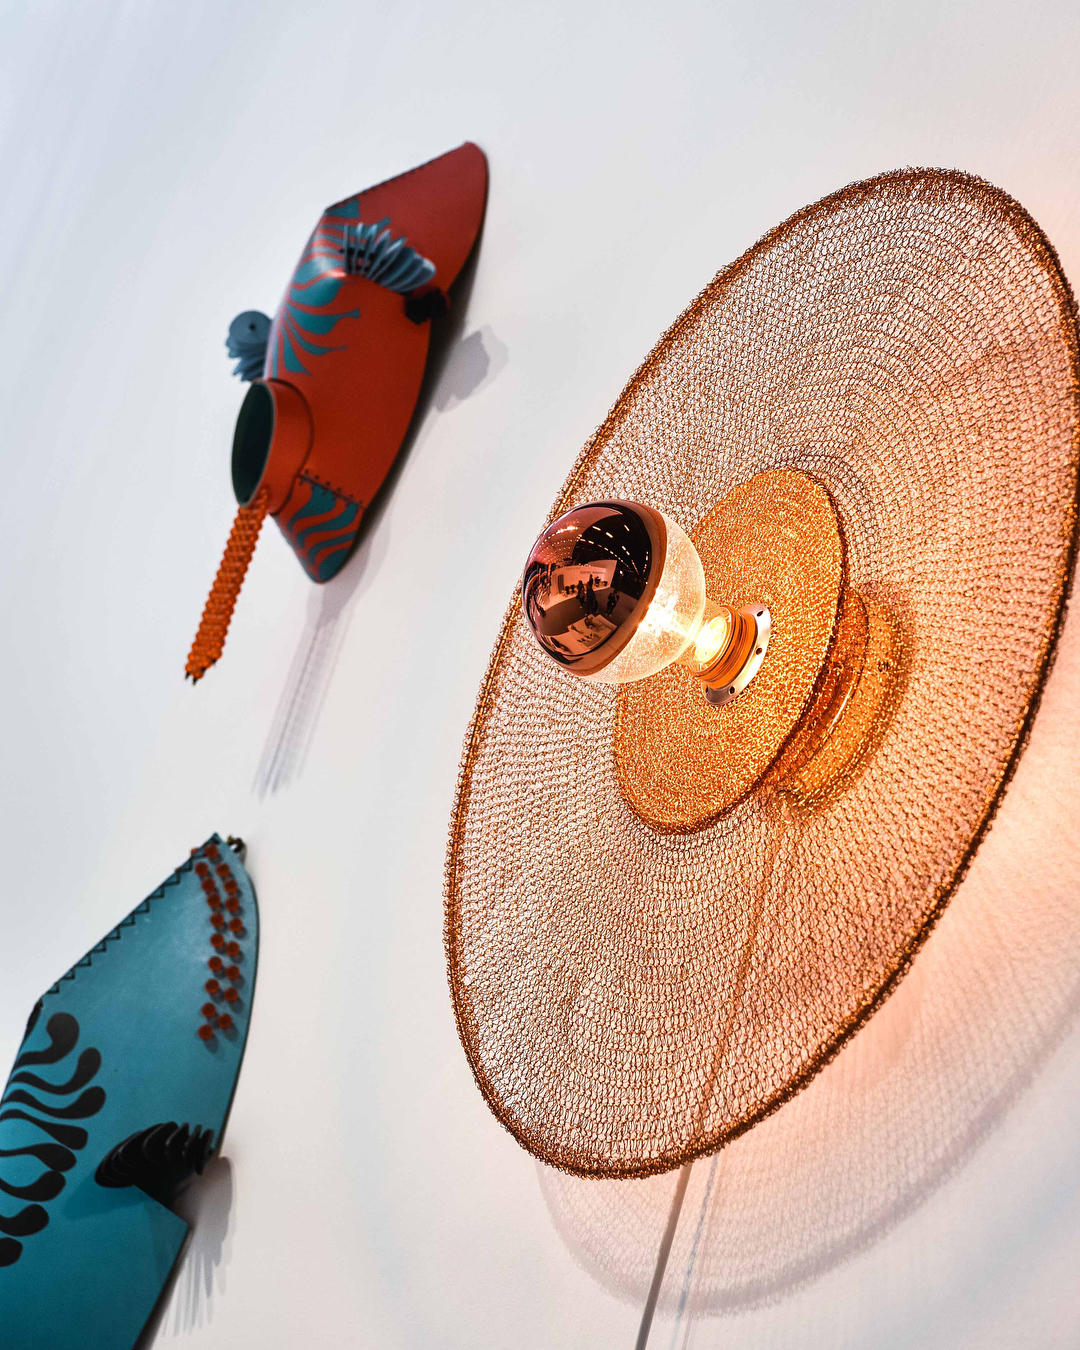 The September edition of Maison et Objet is finished so it's time to see the latest trends and highlights regardingwhat the best design brands were presenting Maison et Objet Hightlights from Maison et Objet September 2018 Ateliers Dart Hightlights from Maison et Objet September 2018